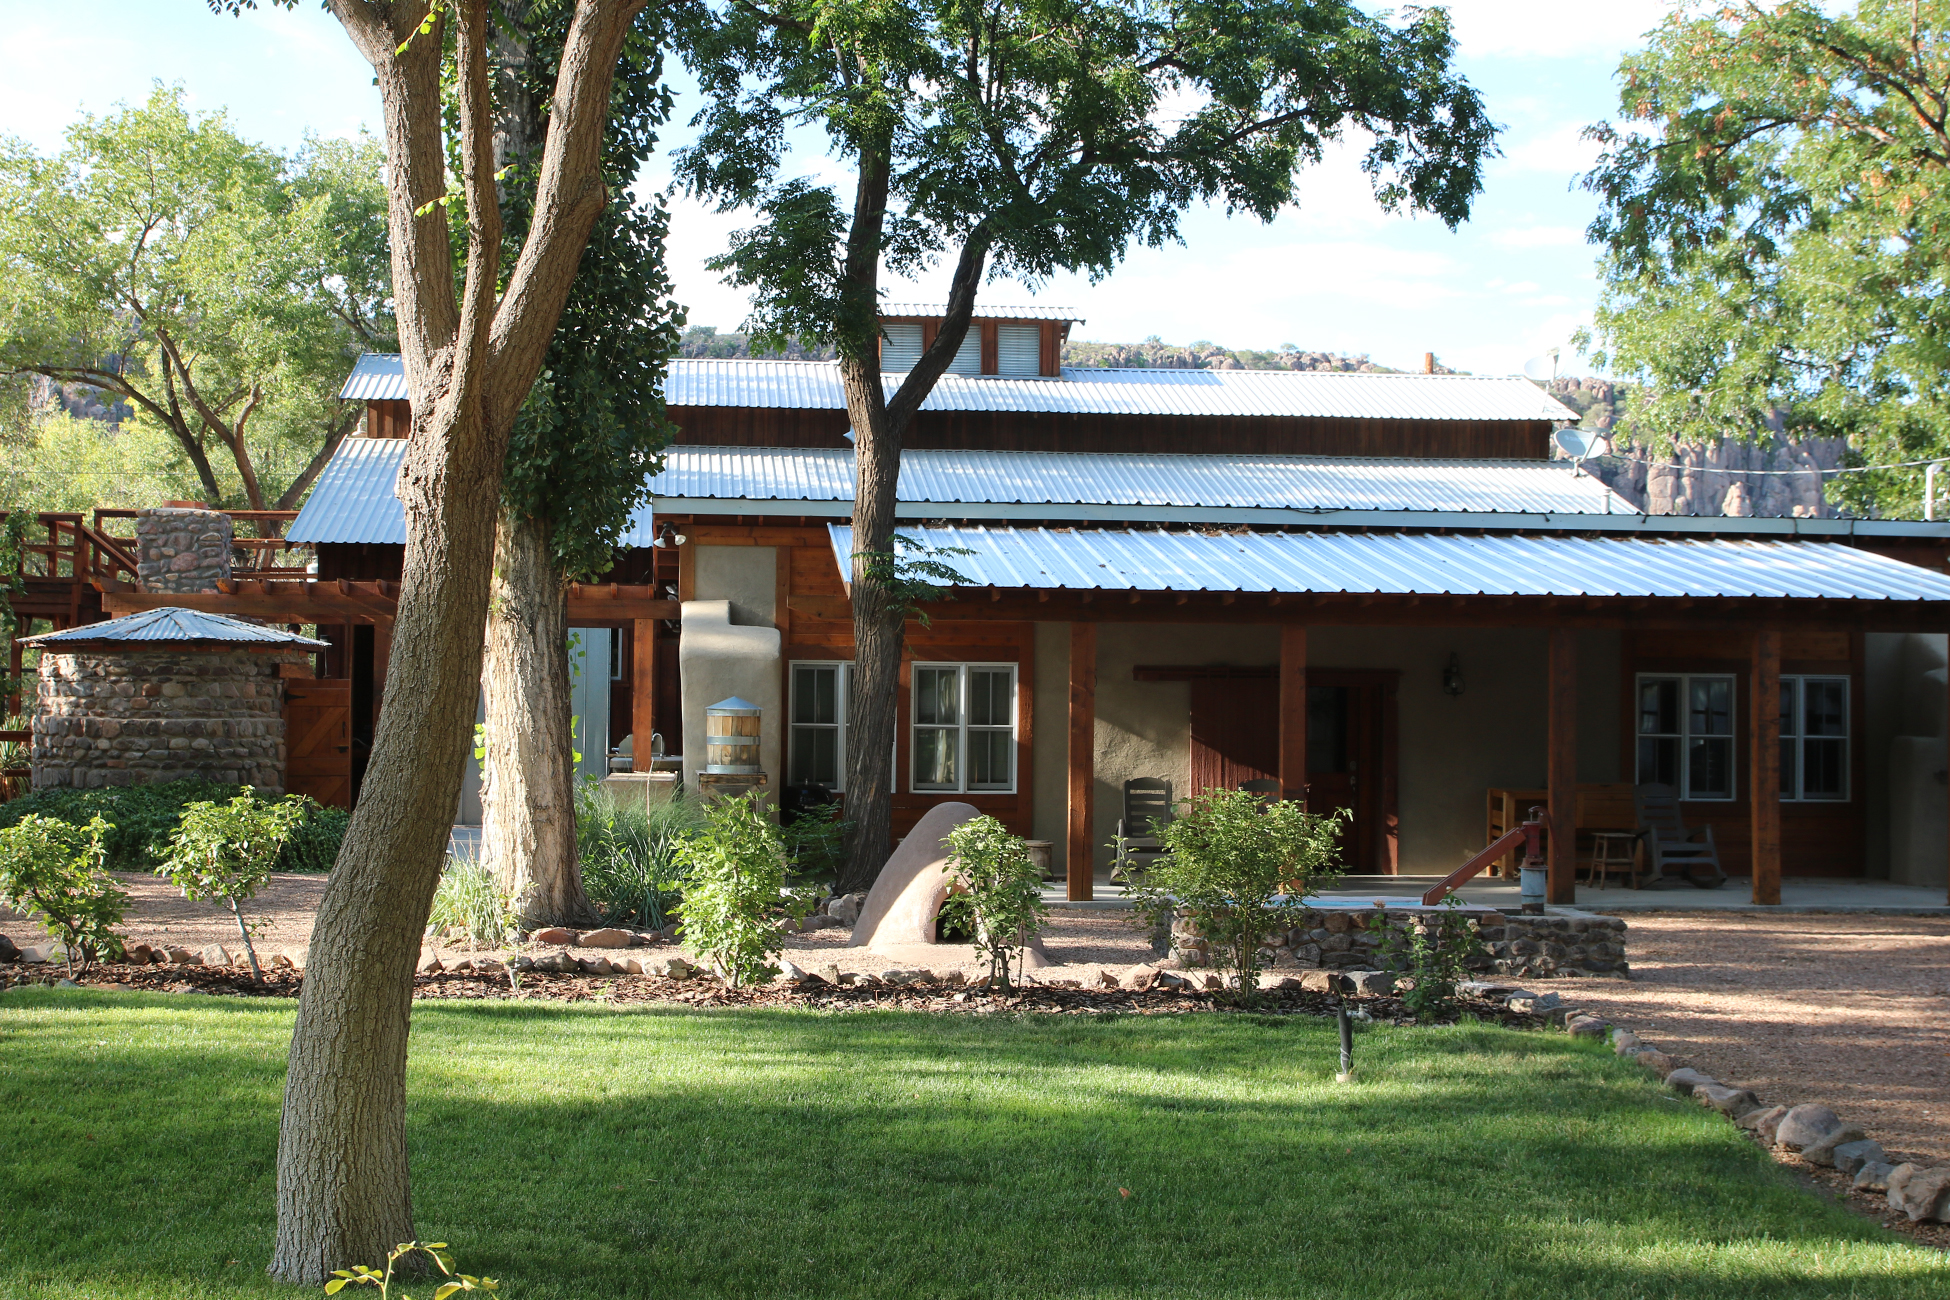 The-Bunkhouse-at-Cow-Camp-Best-Place-To-Stay-in-Fort-Davis-Header